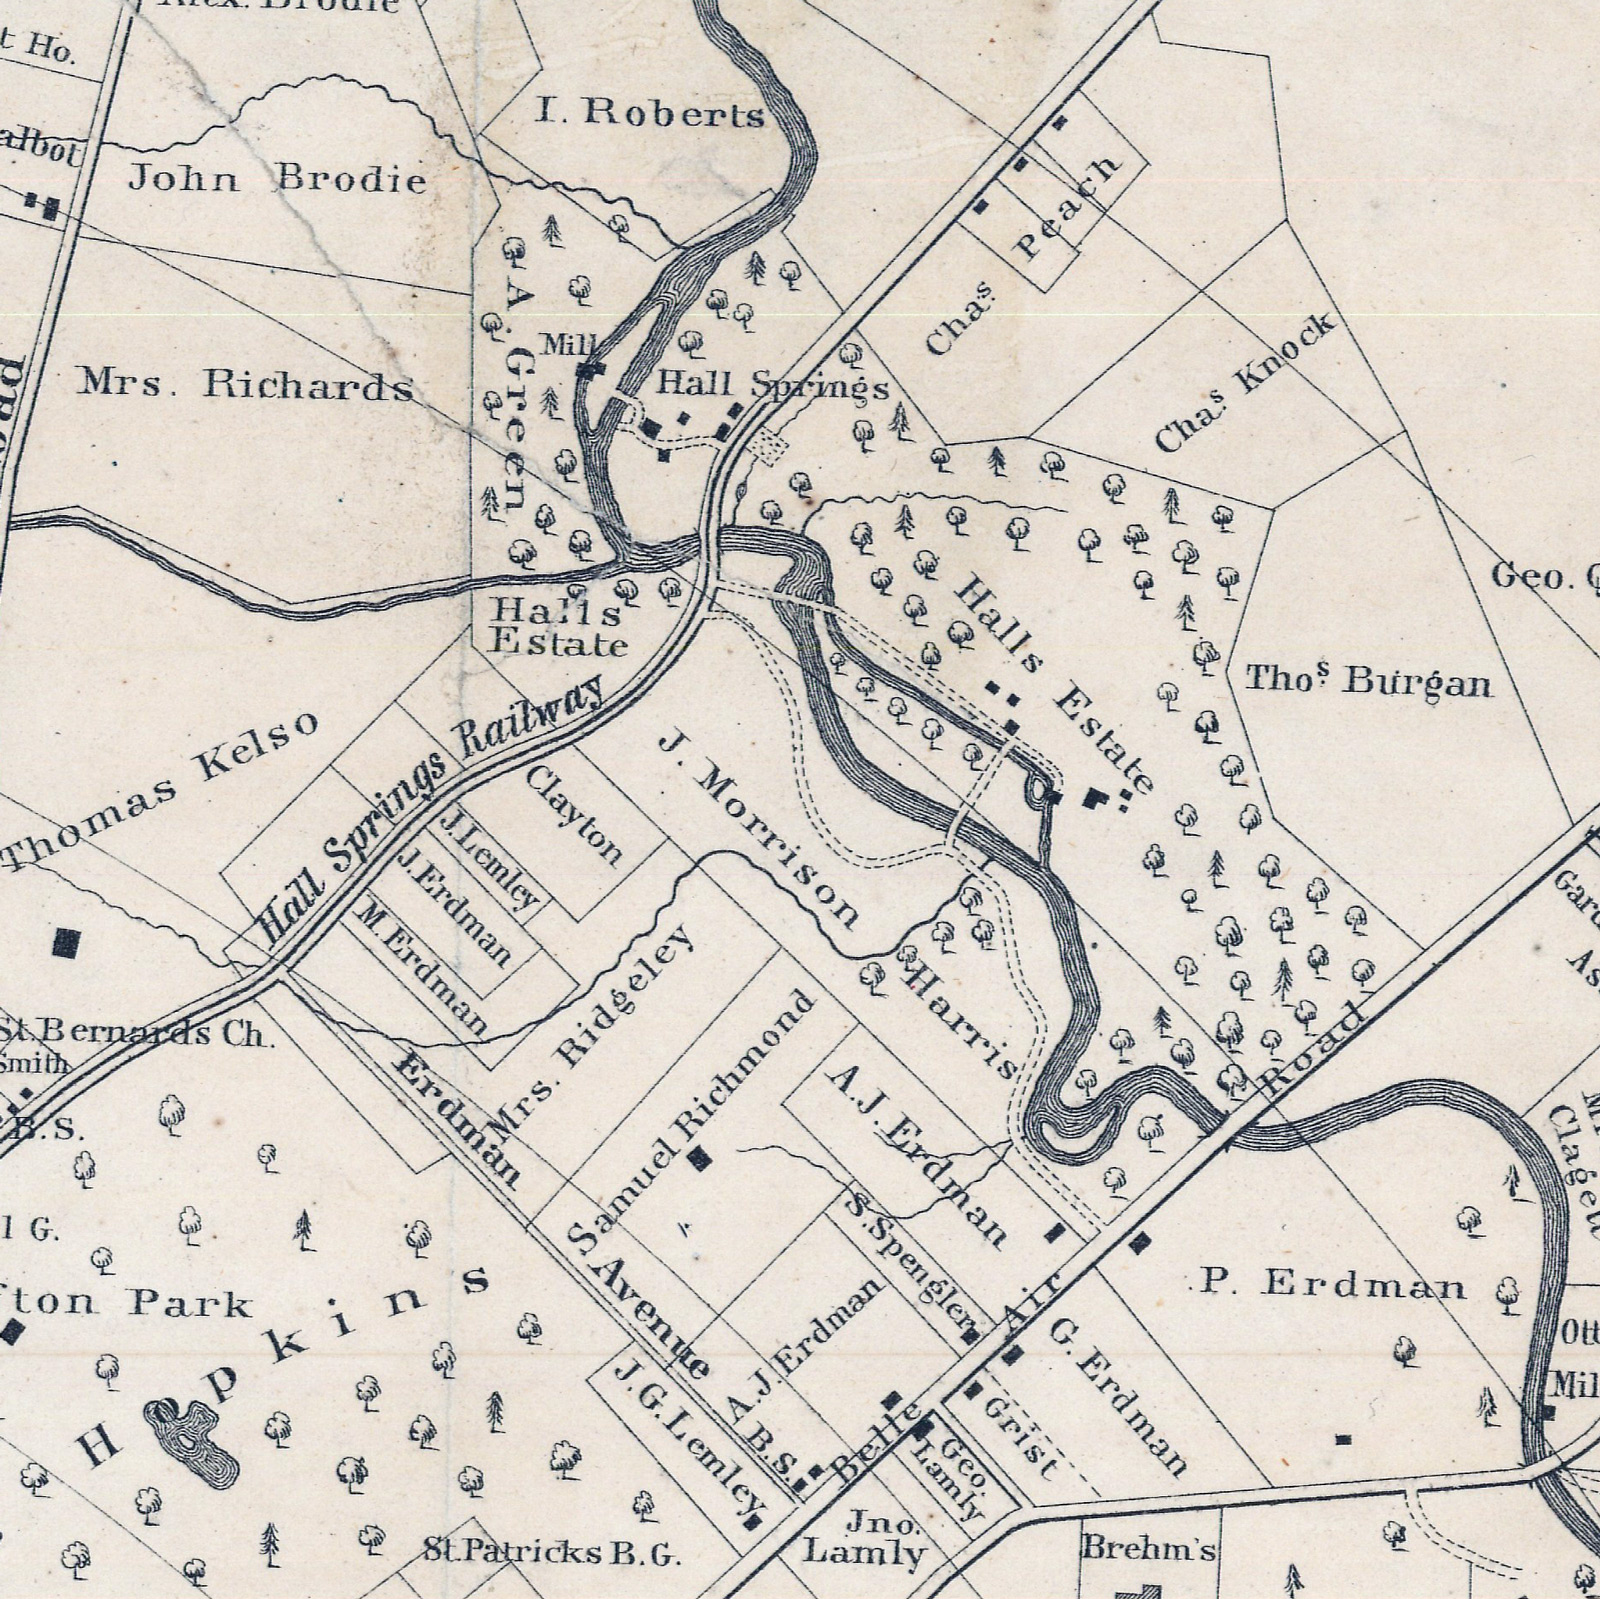 Area of Hall's Spring, from Map of the city and suburbs of Baltimore, 1853, William Sides. Courtesy JScholarship.